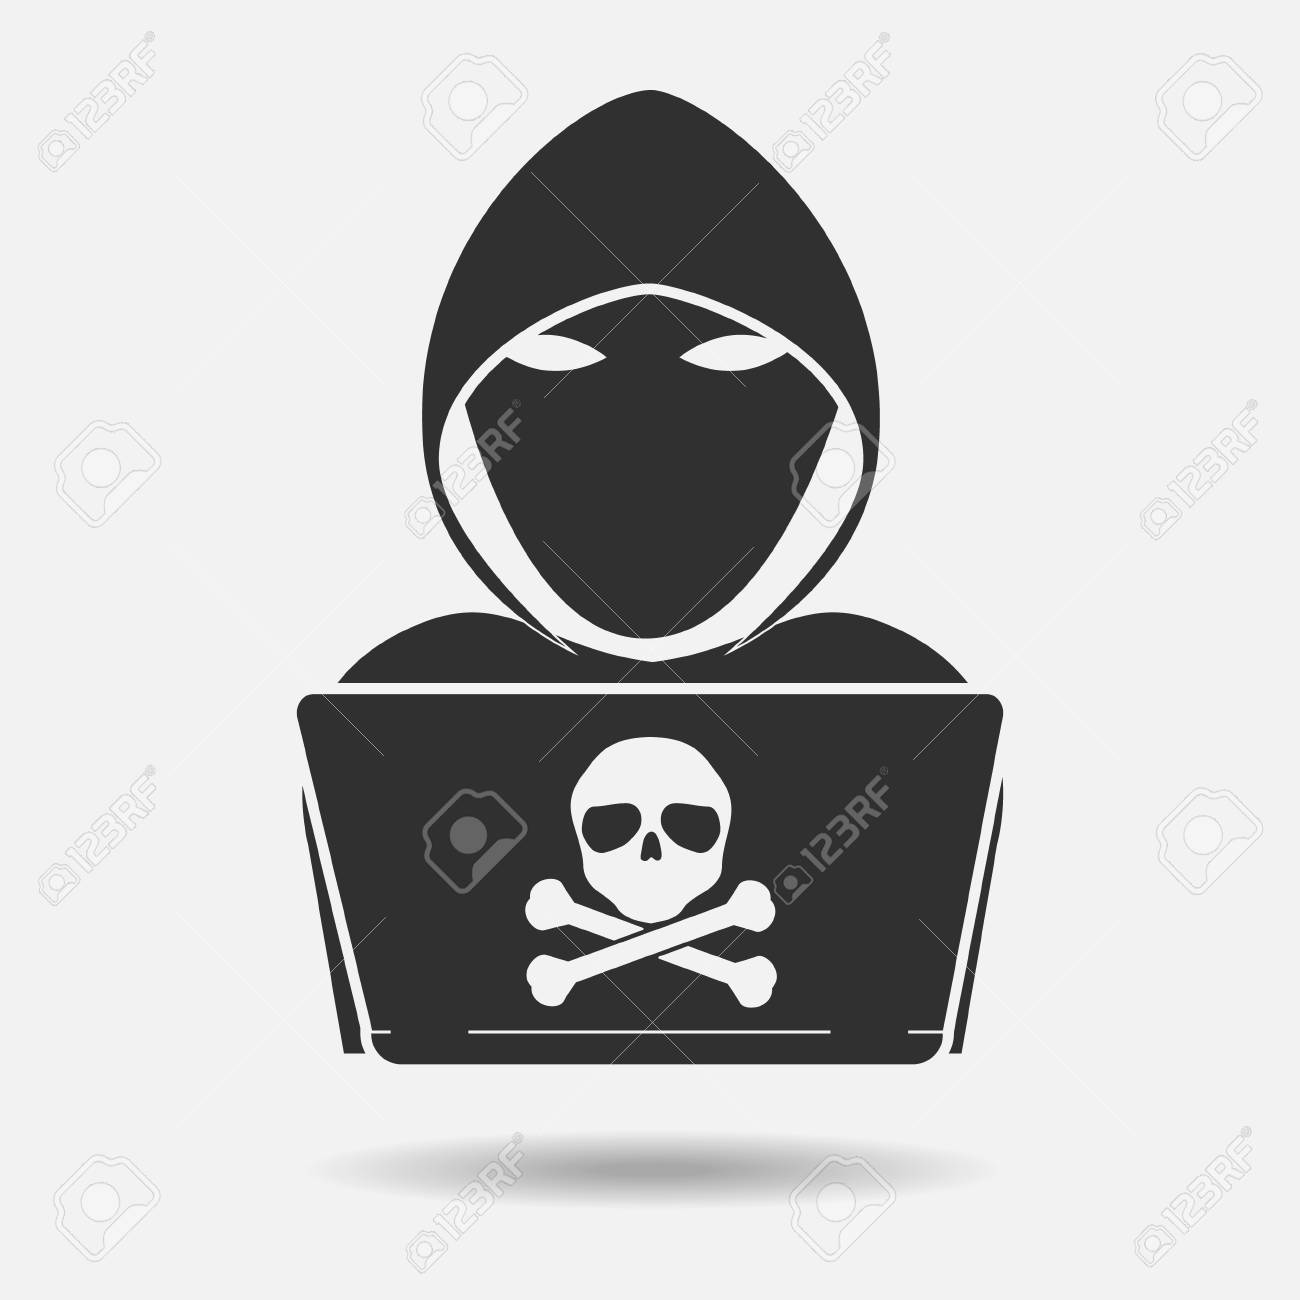 Hacker Icon Black Shadow With Skull Cross Bone On White Background Royalty Free Cliparts Vectors And Stock Illustration Image 79879544